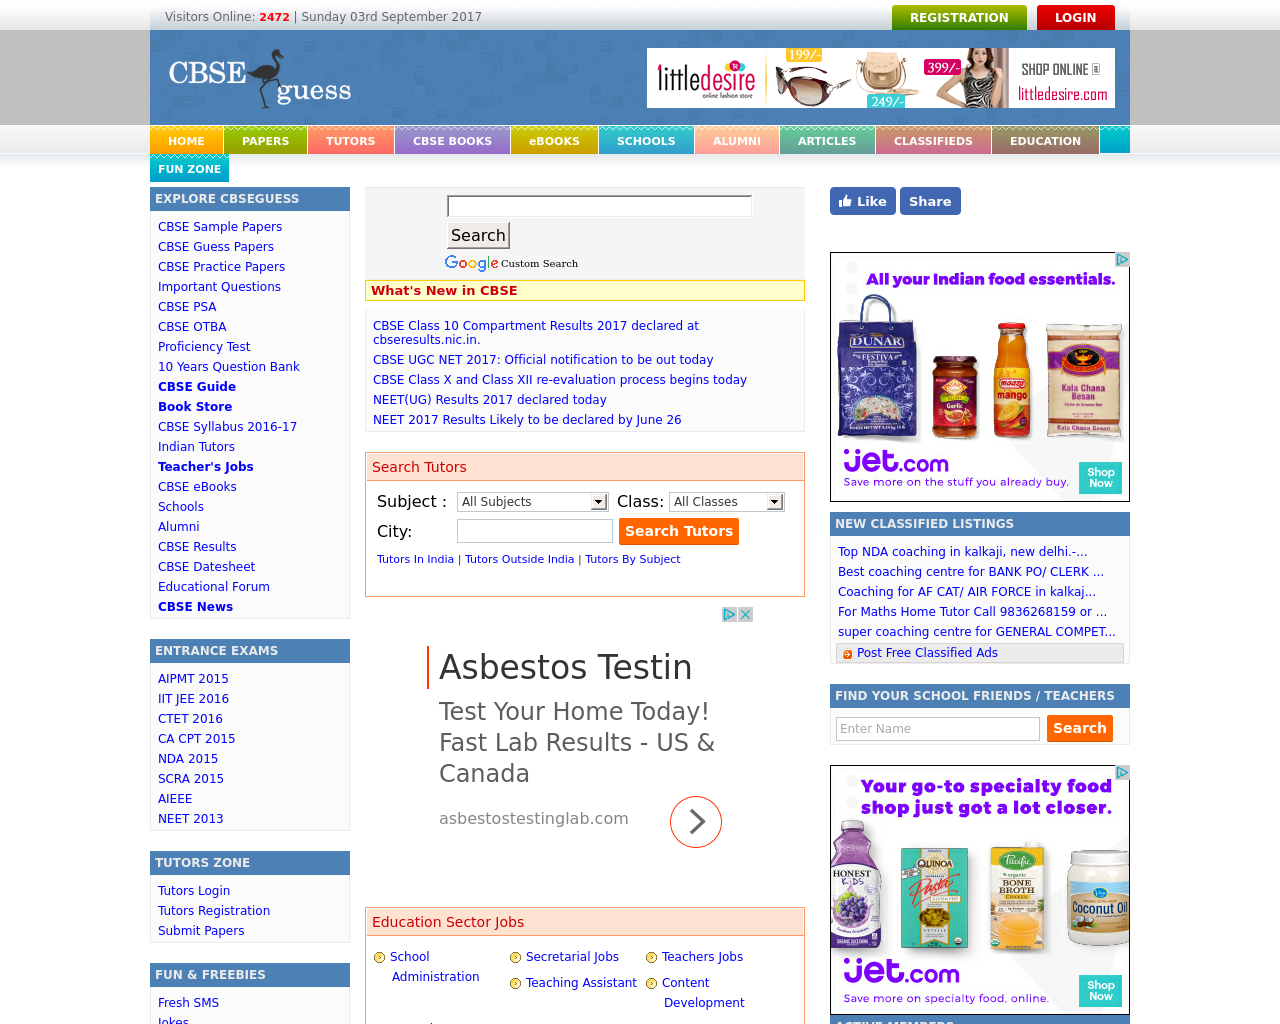 CBSE-Guess-Advertising-Reviews-Pricing